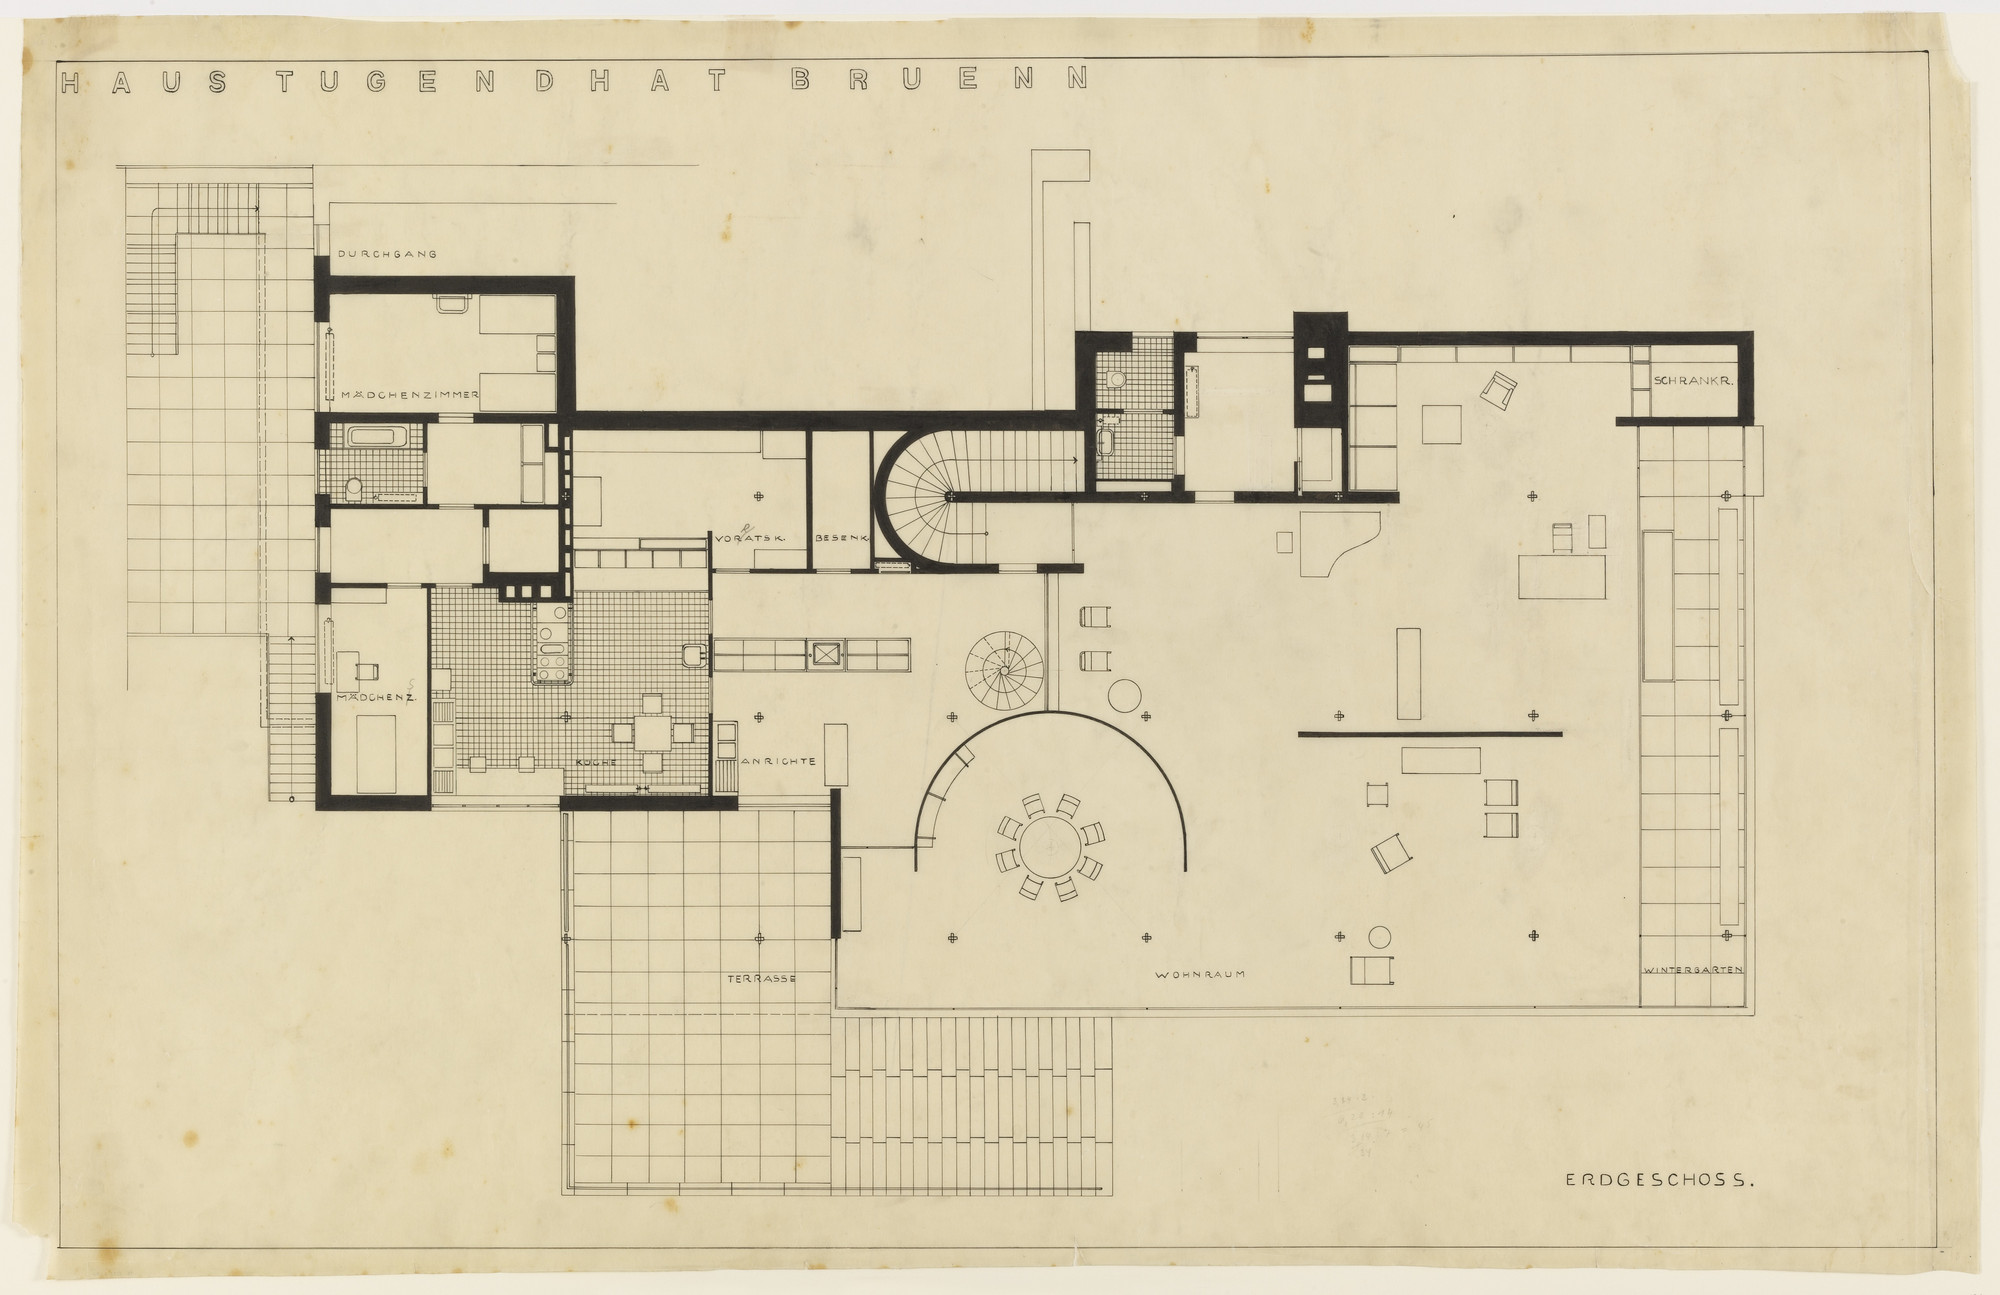 Ludwig Mies van der Rohe. Tugendhat House, Brno, Czech Republic, Ground floor plan. 1928-30